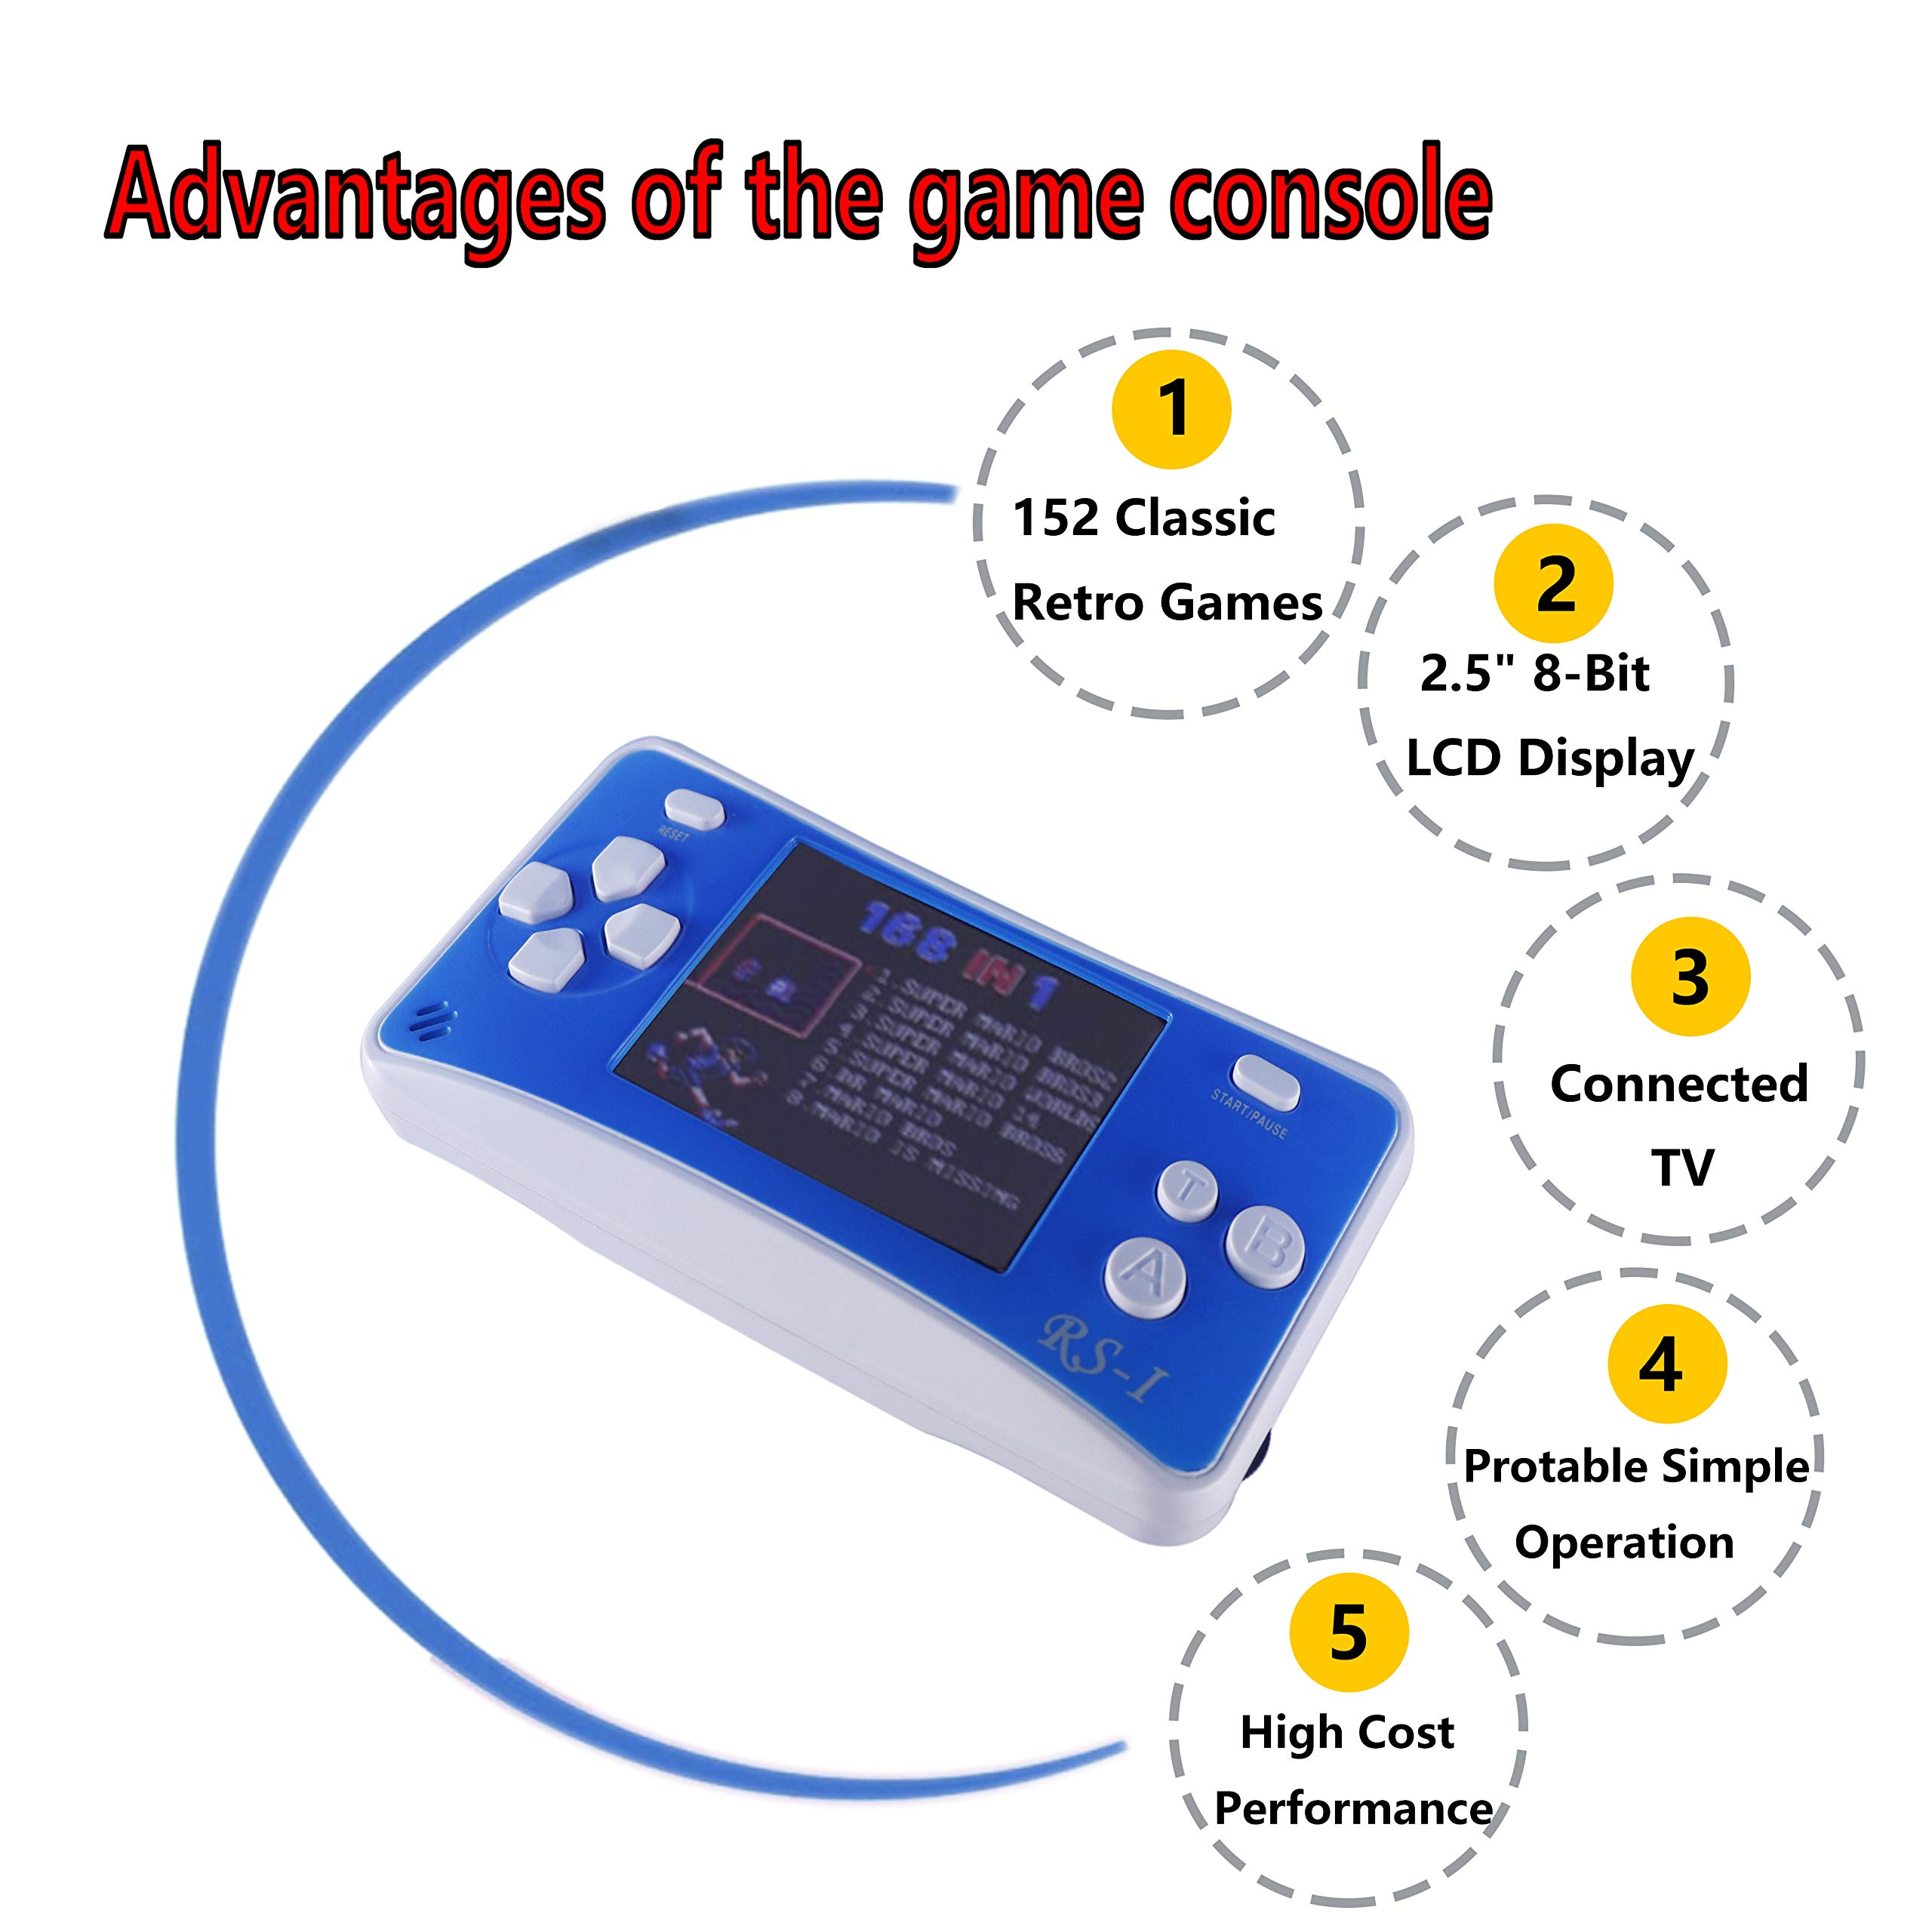 2 Packs Handheld Game Console for Children,The 80's Arcade Retro Game Player with 2.5'' 8-Bit LCD Portable Video Games Can Connected TV,Built-in 152 Classic Old School Game(Green and Blue) by Sokolp (Image #5)